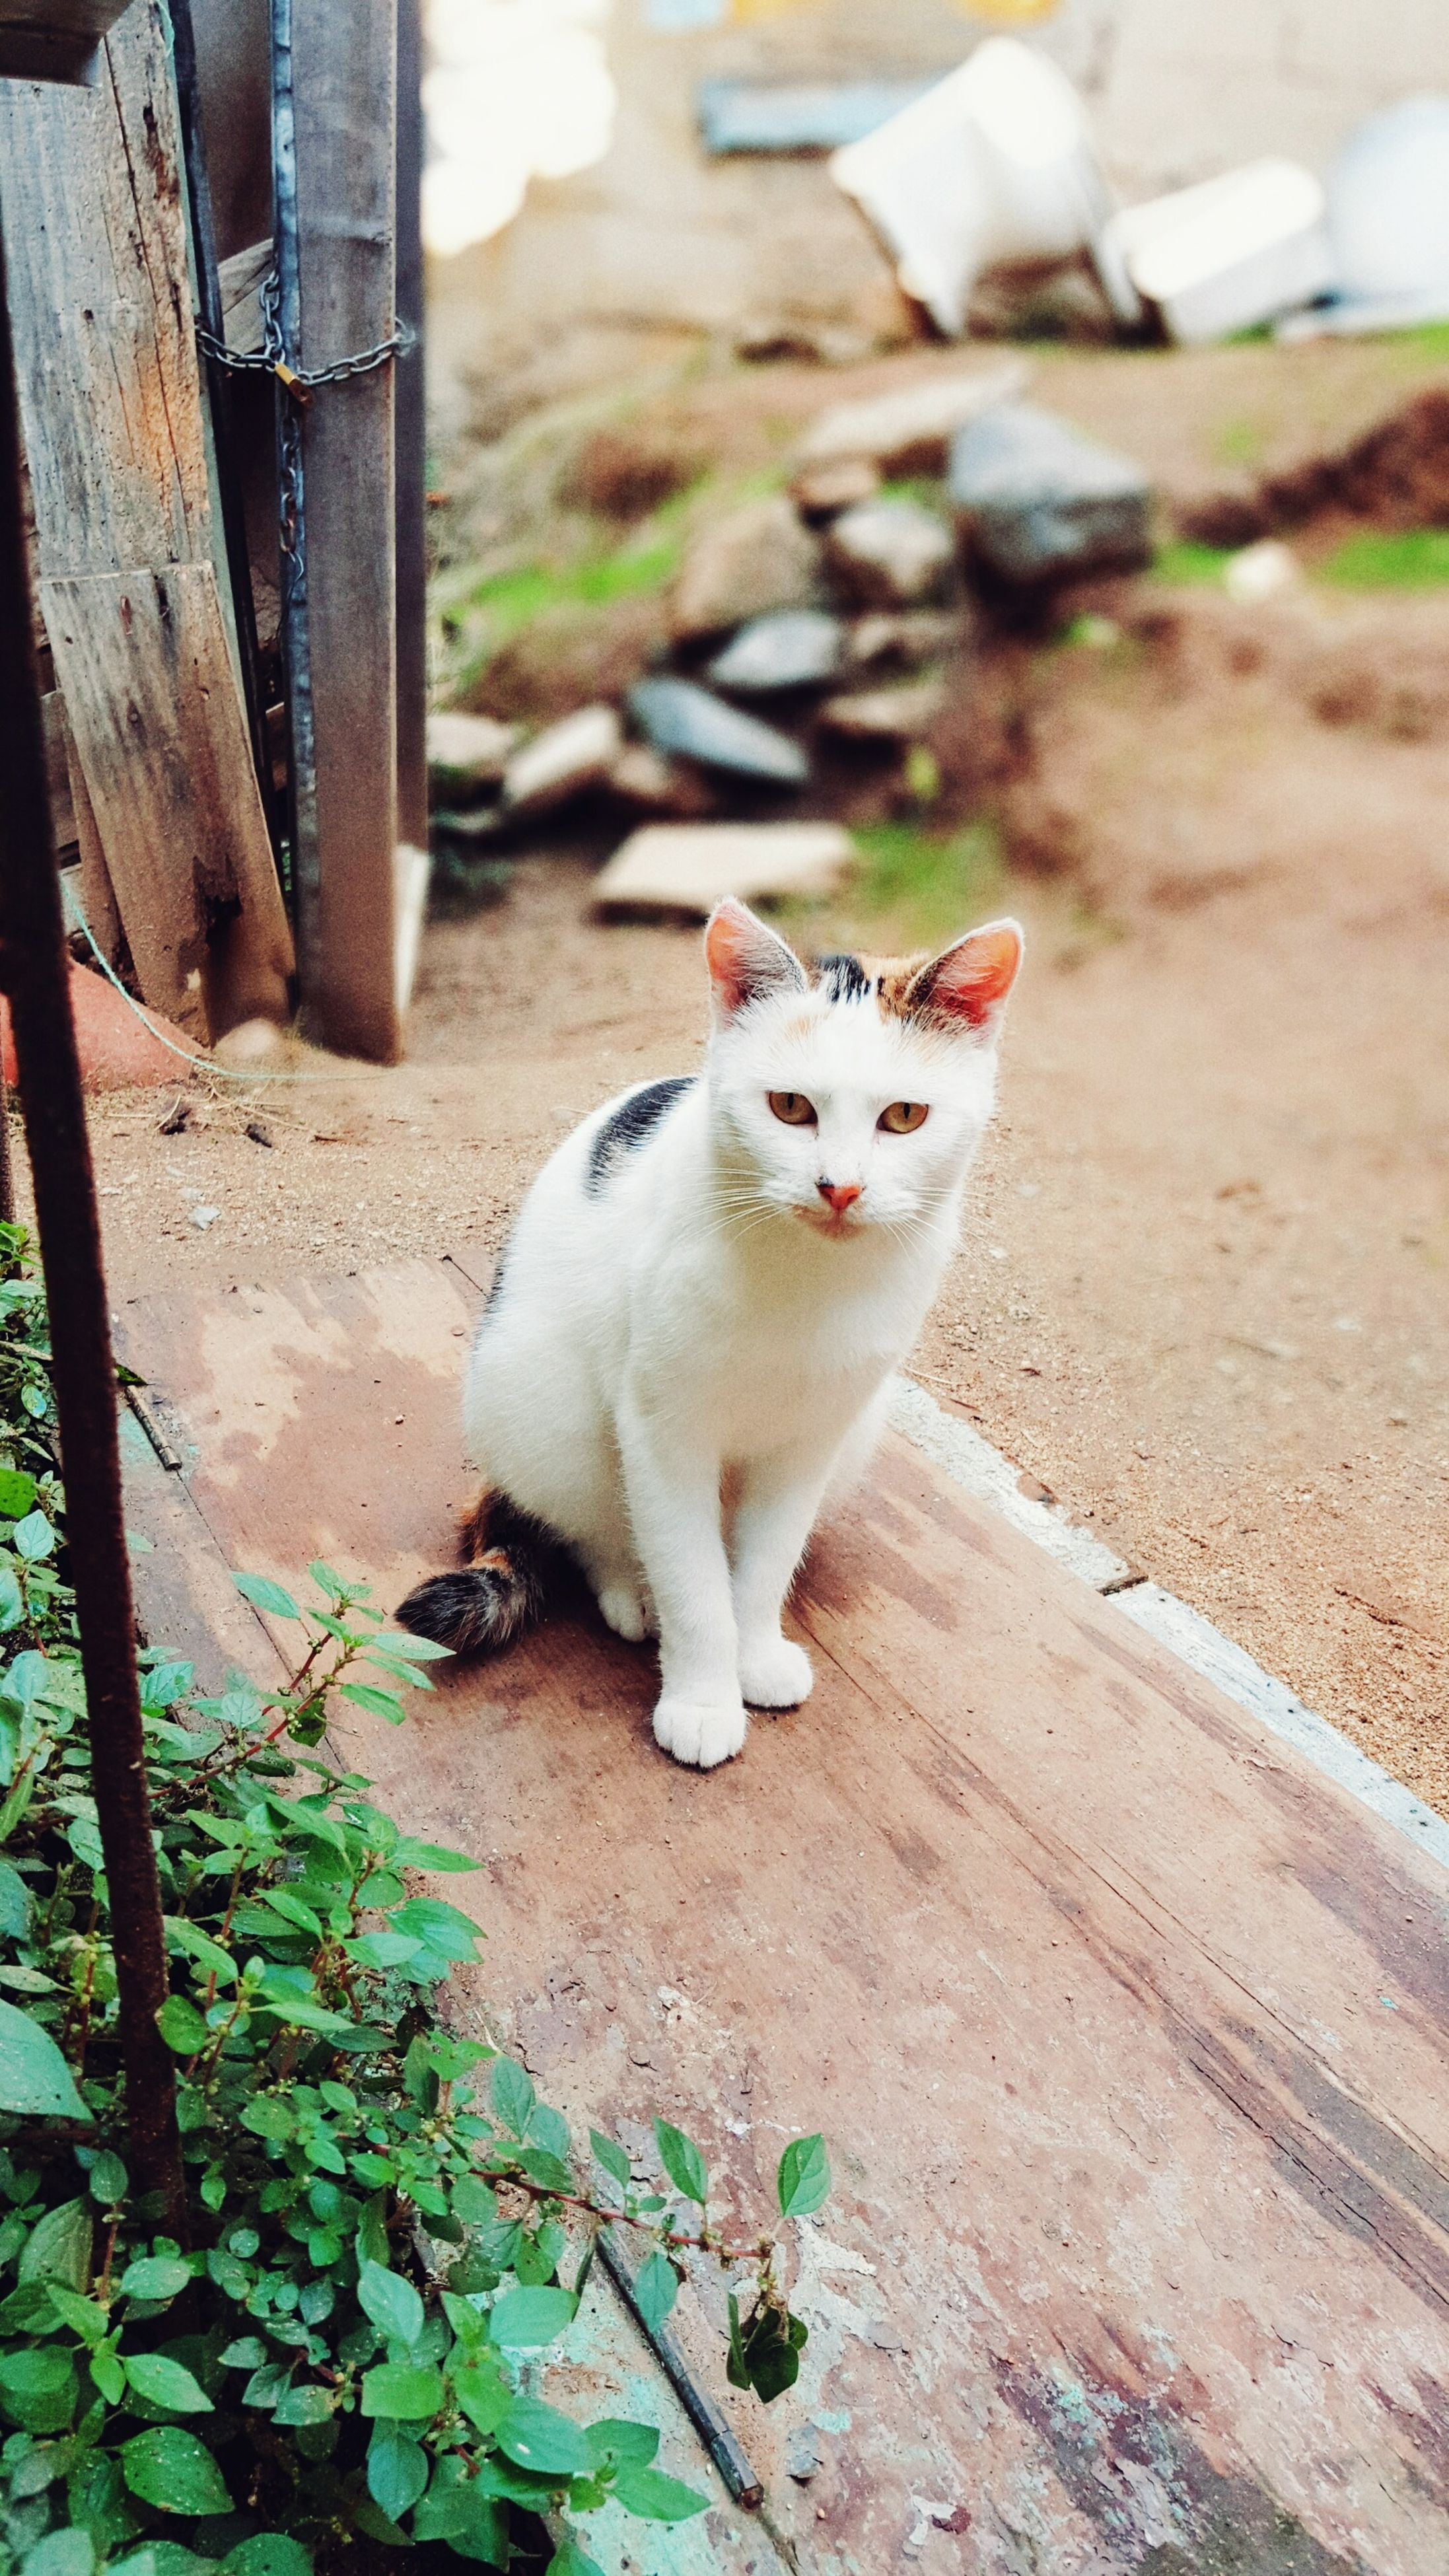 one animal, domestic cat, animal themes, mammal, pets, feline, domestic animals, cat, looking at camera, no people, portrait, sitting, day, outdoors, plant, leaf, nature